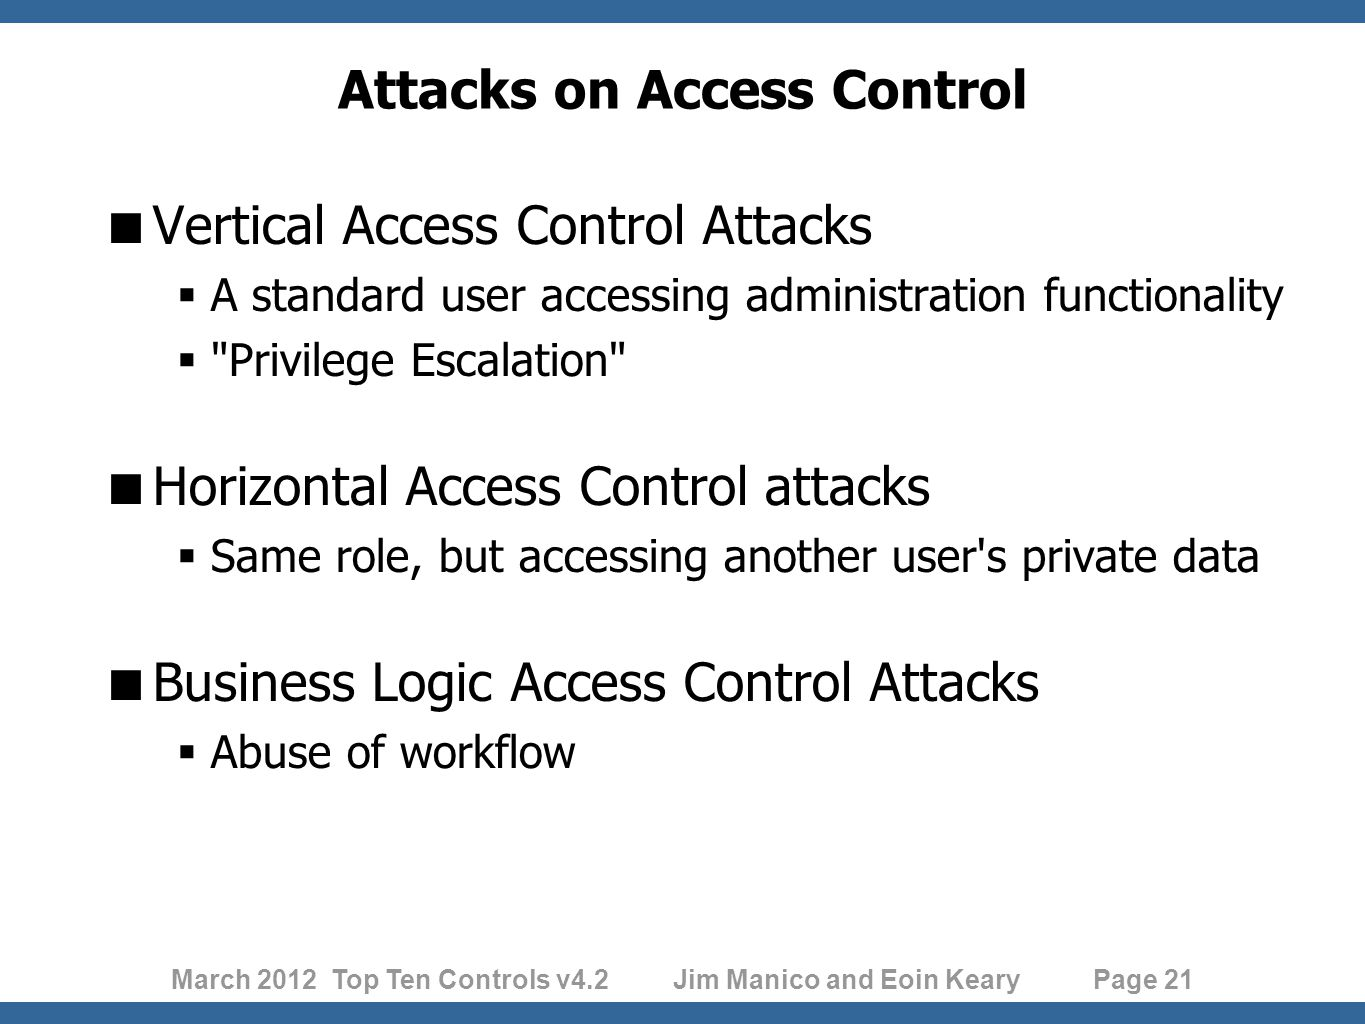 March 2012 Top Ten Controls v4.2 Jim Manico and Eoin Keary Page 21 Attacks on Access Control  Vertical Access Control Attacks  A standard user accessing administration functionality  Privilege Escalation  Horizontal Access Control attacks  Same role, but accessing another user s private data  Business Logic Access Control Attacks  Abuse of workflow